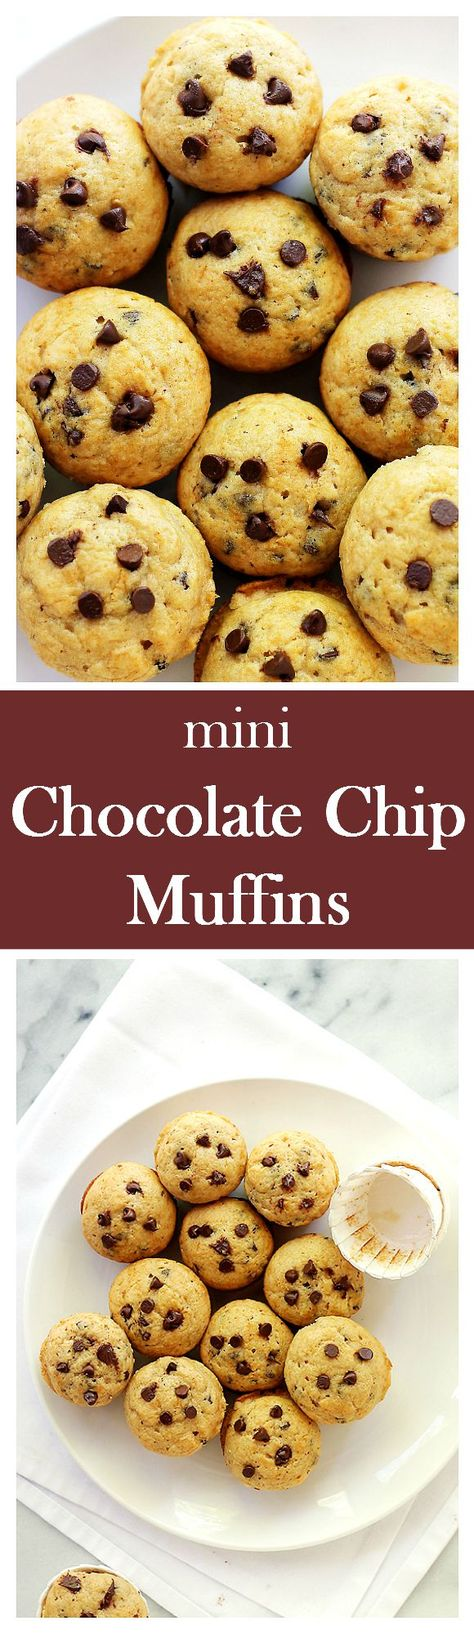 Mini Chocolate Chip Muffins | www.diethood.com | Soft, tender and sweet, this recipe for Mini Chocolate Chip Muffins is perfect for a lunch box or an after school treat!